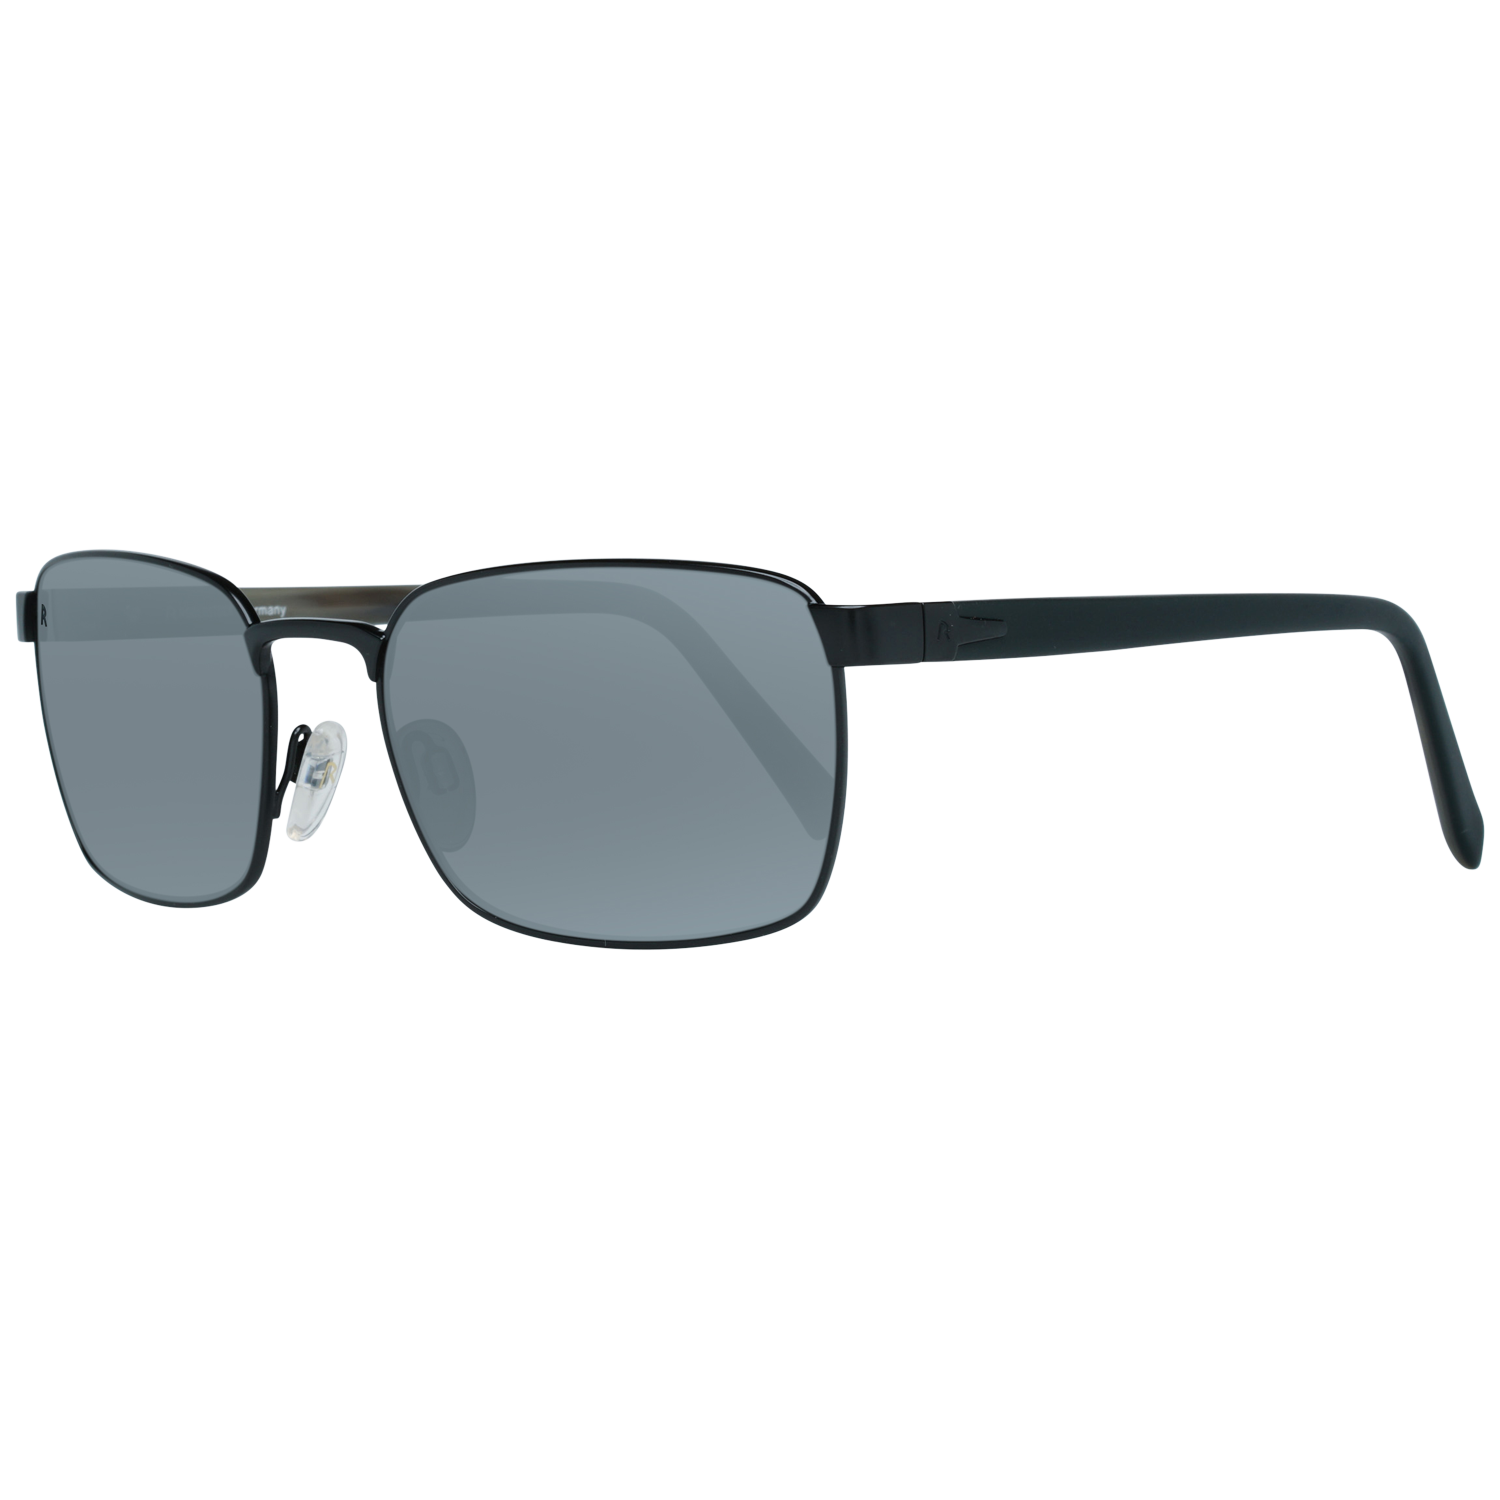 Rodenstock Sunglasses R1417 A 56 Black